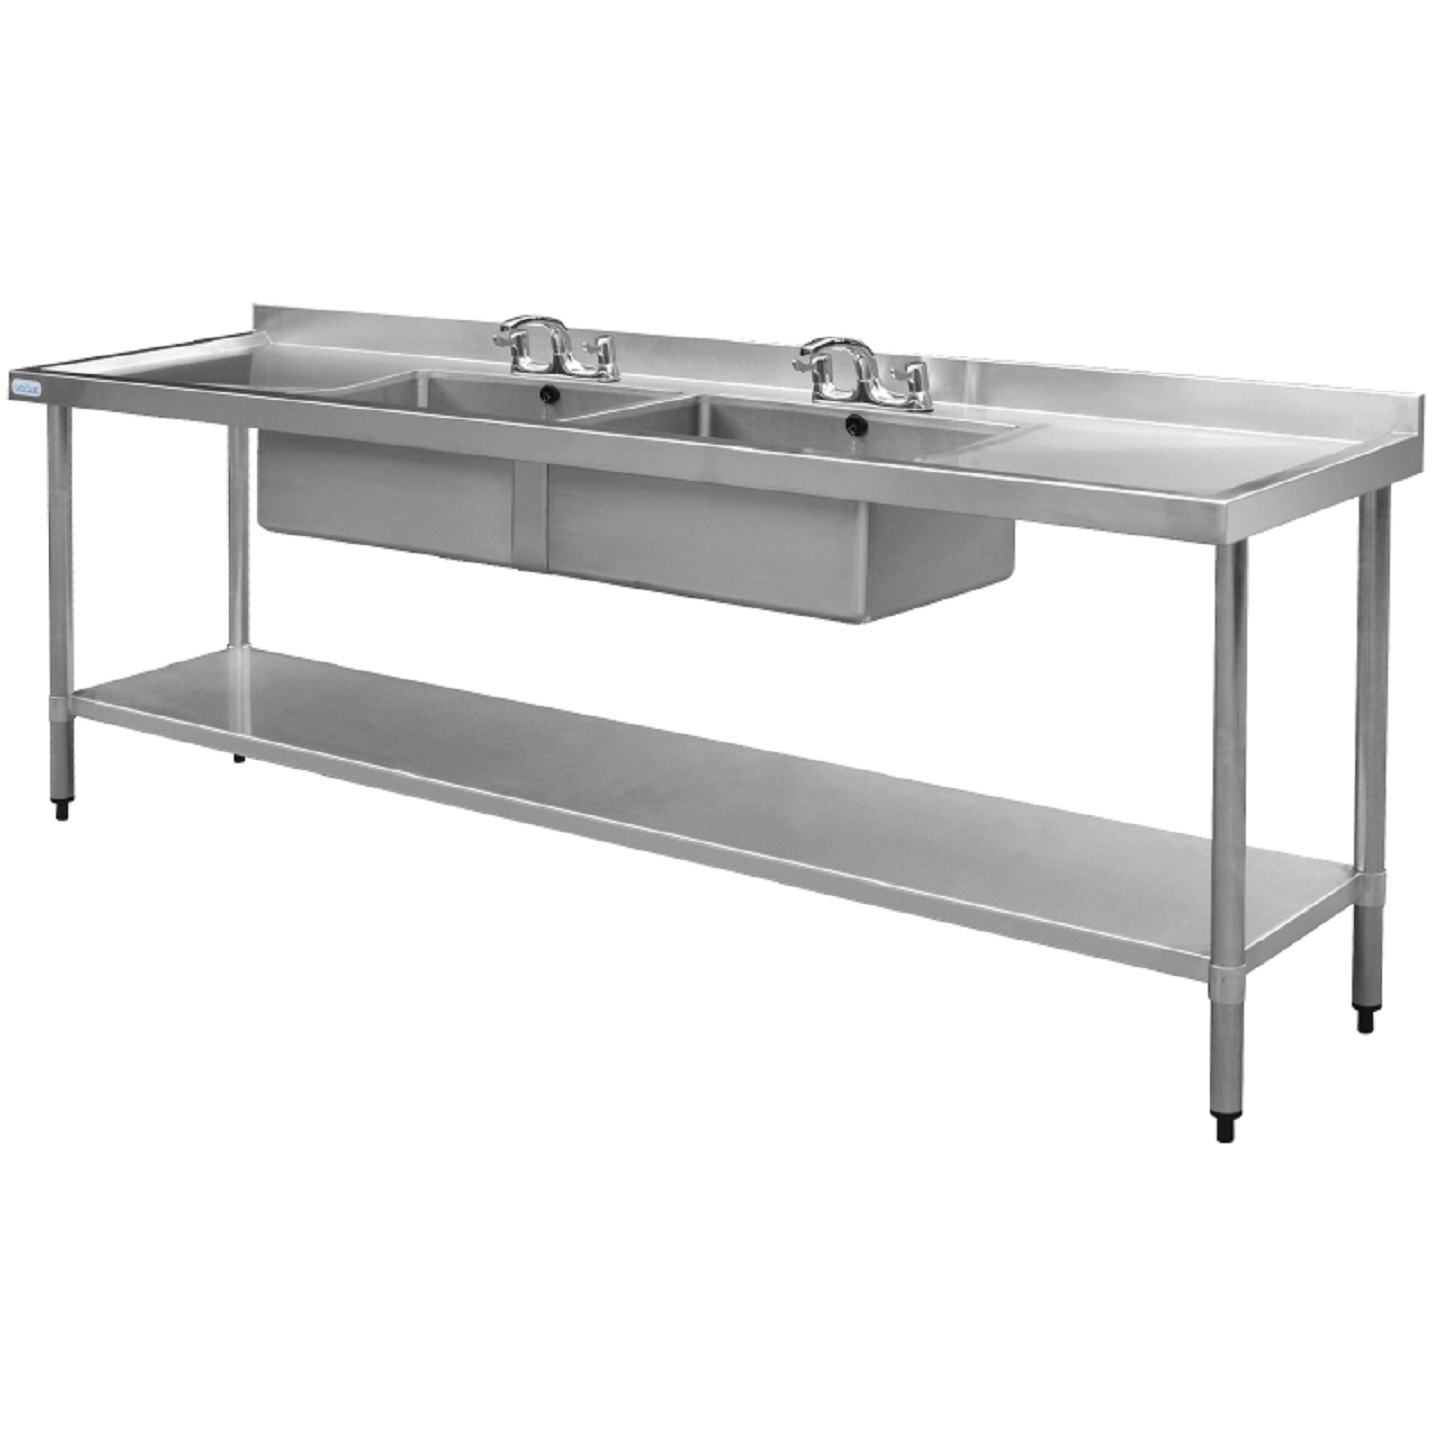 Mobilier Cuisine Inox Occasion Evier Inox X Vier Double Gouttoir Double With Evier Inox